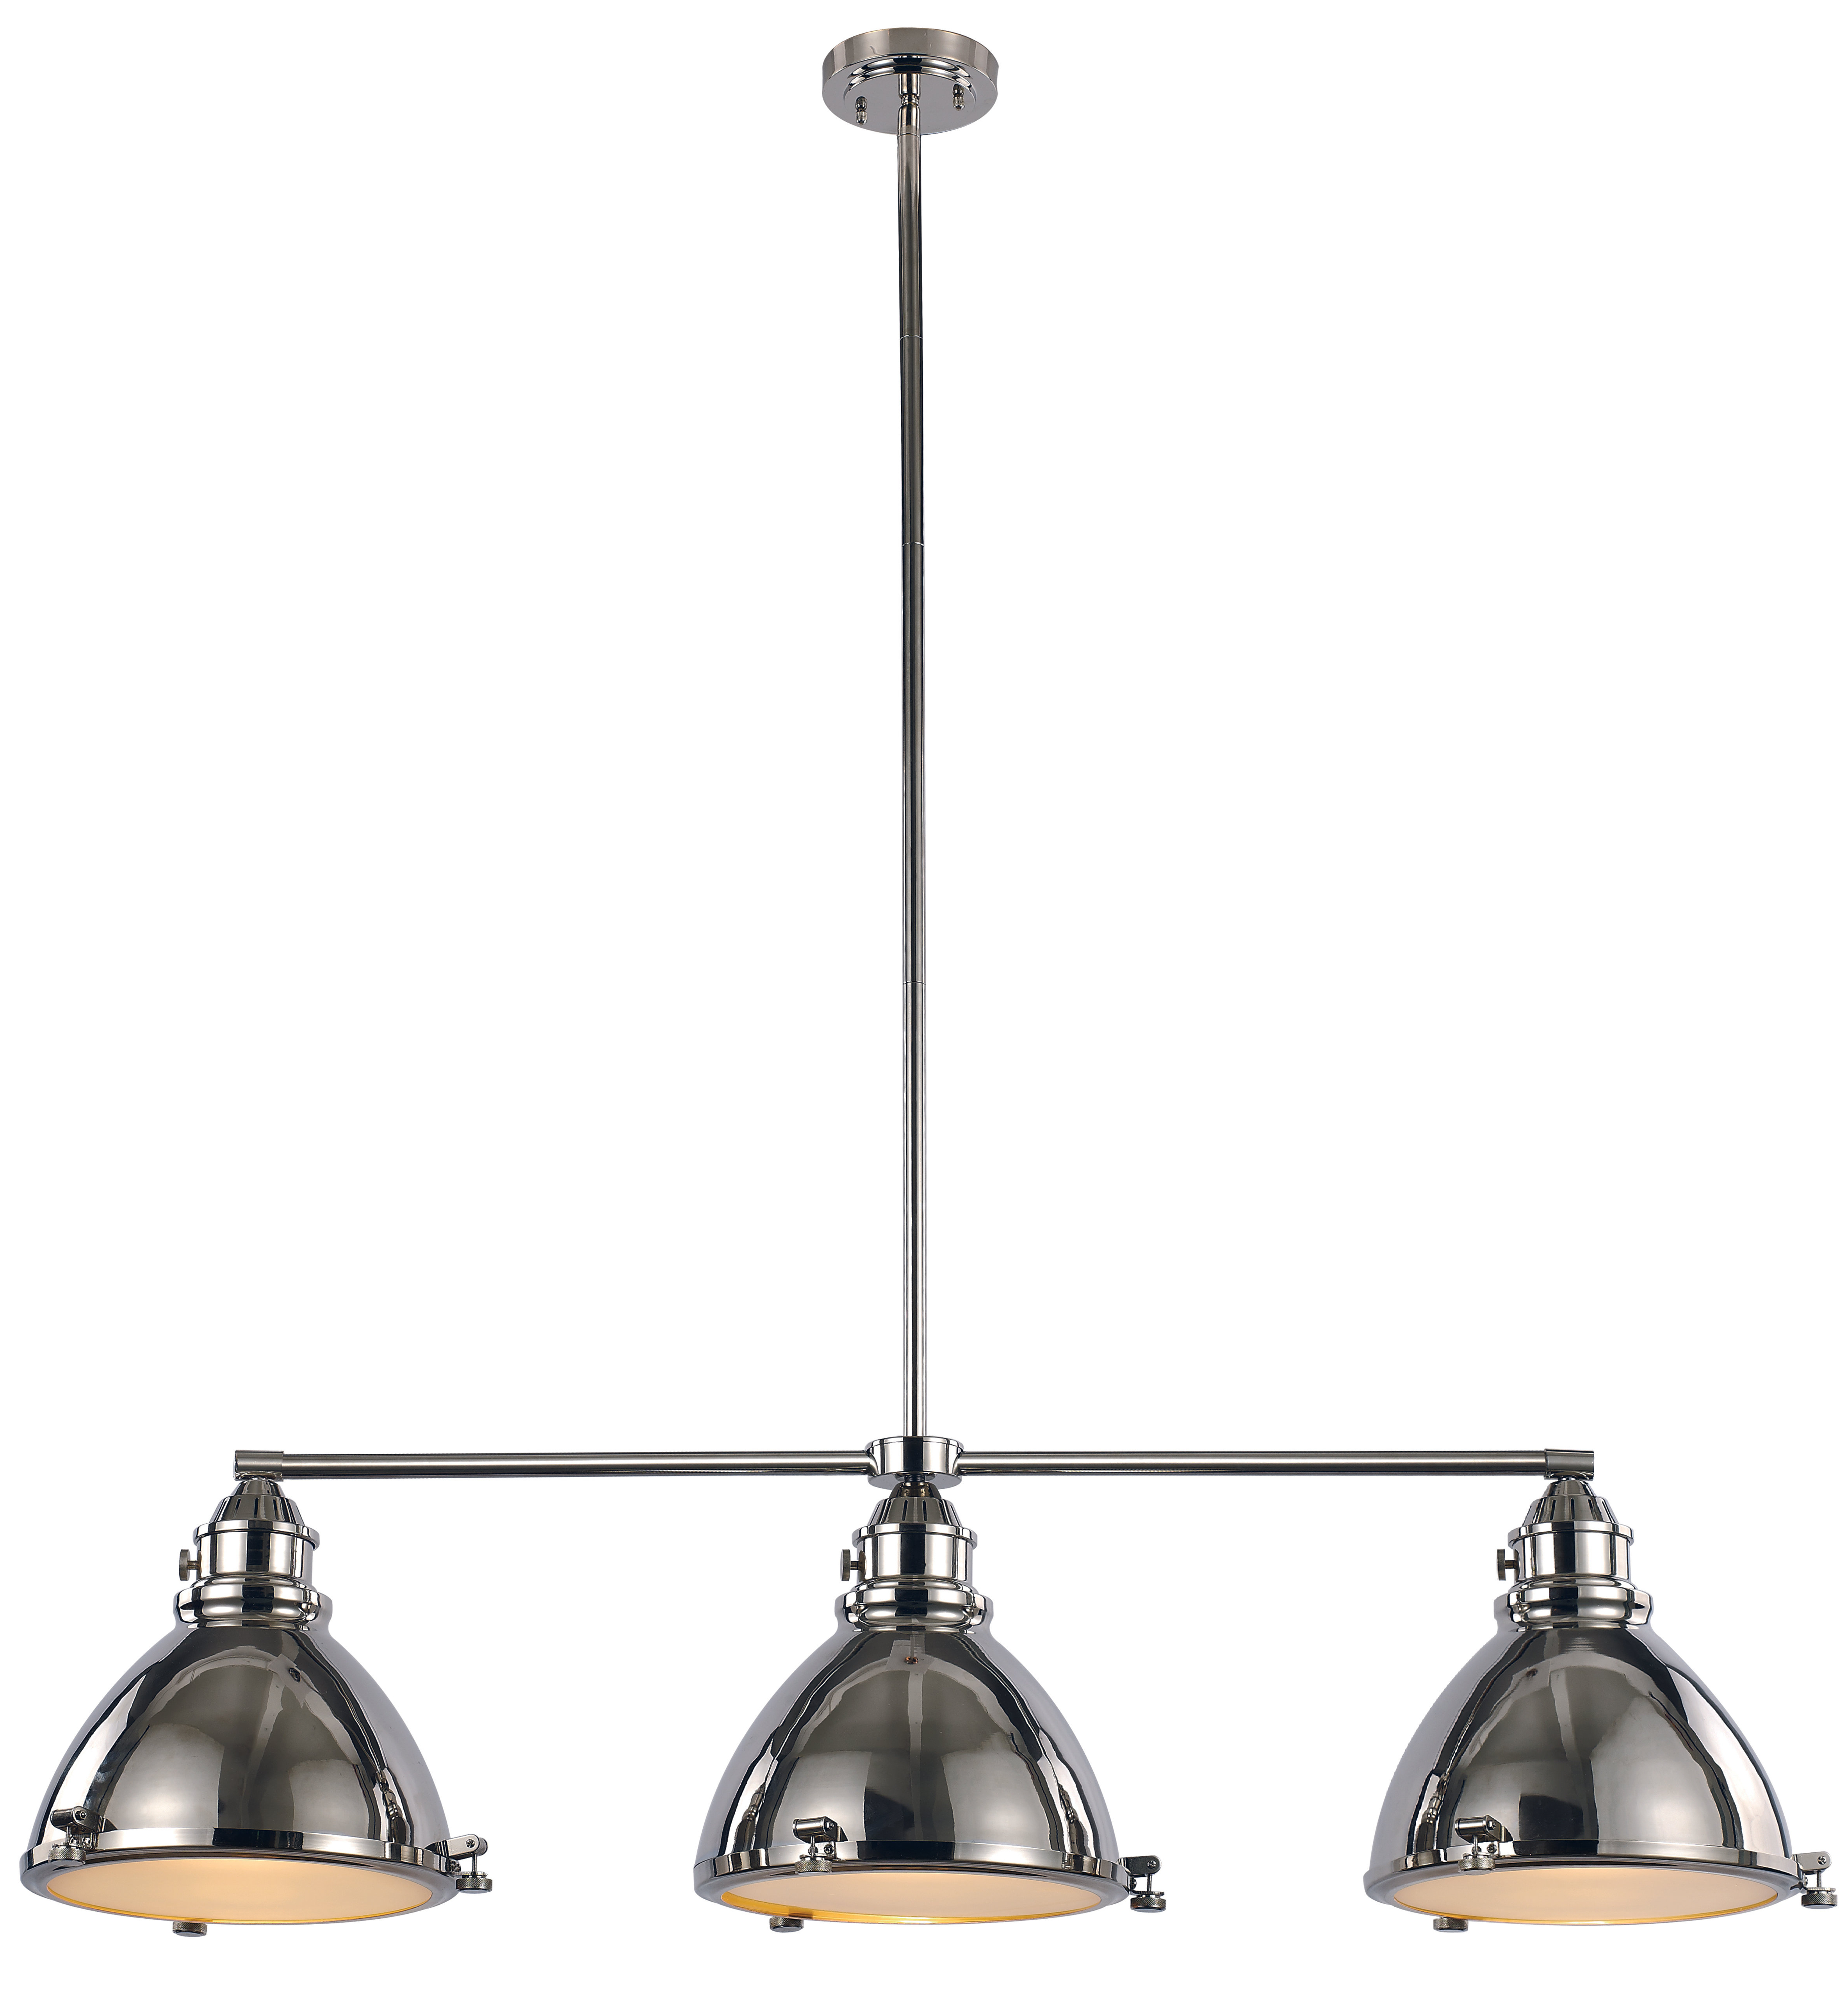 Modern Industrial Pendant Lighting (View 15 of 25)